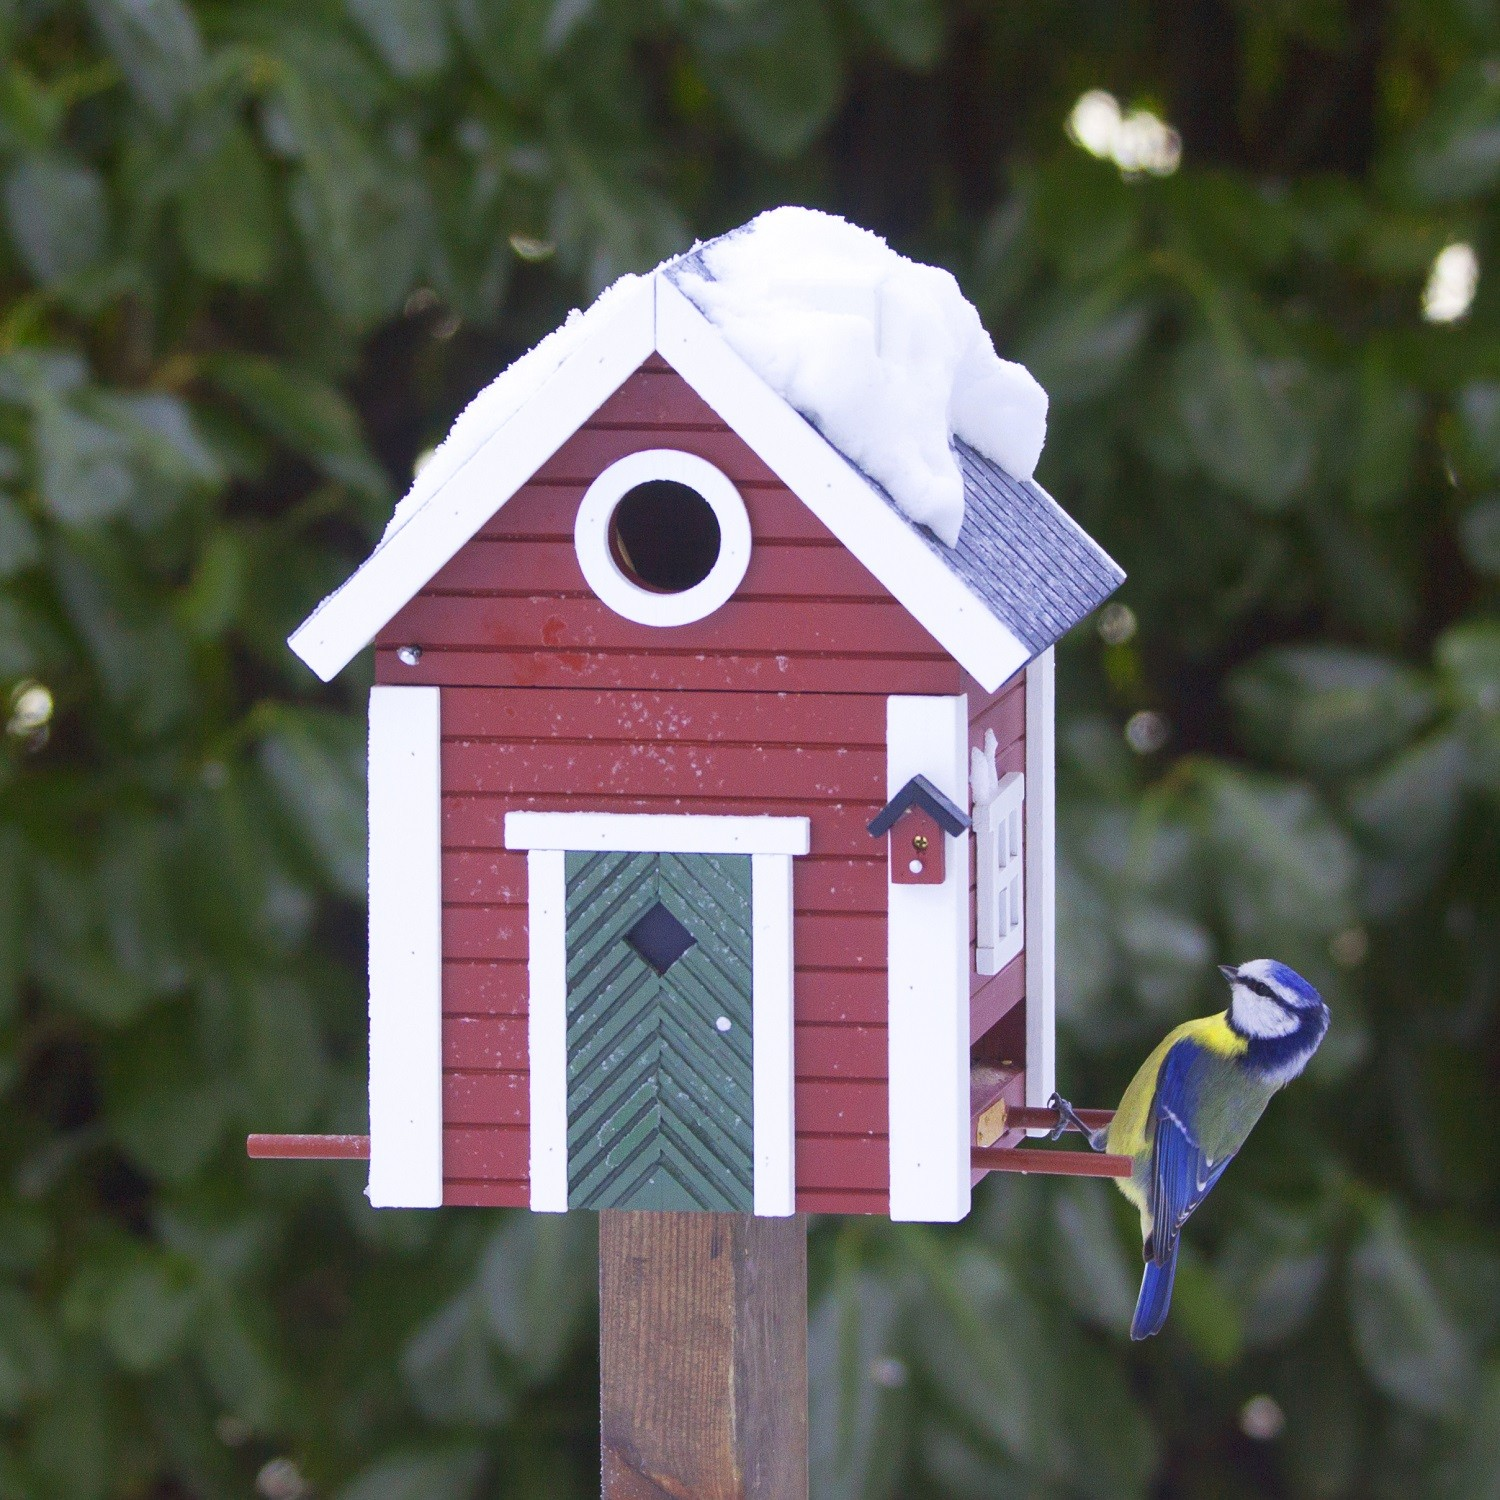 photo feeding en animal feeder nature wildlife watch blue garden bird free photography images close small jungle aviary eat food feeders fauna beautiful tit sun world feed